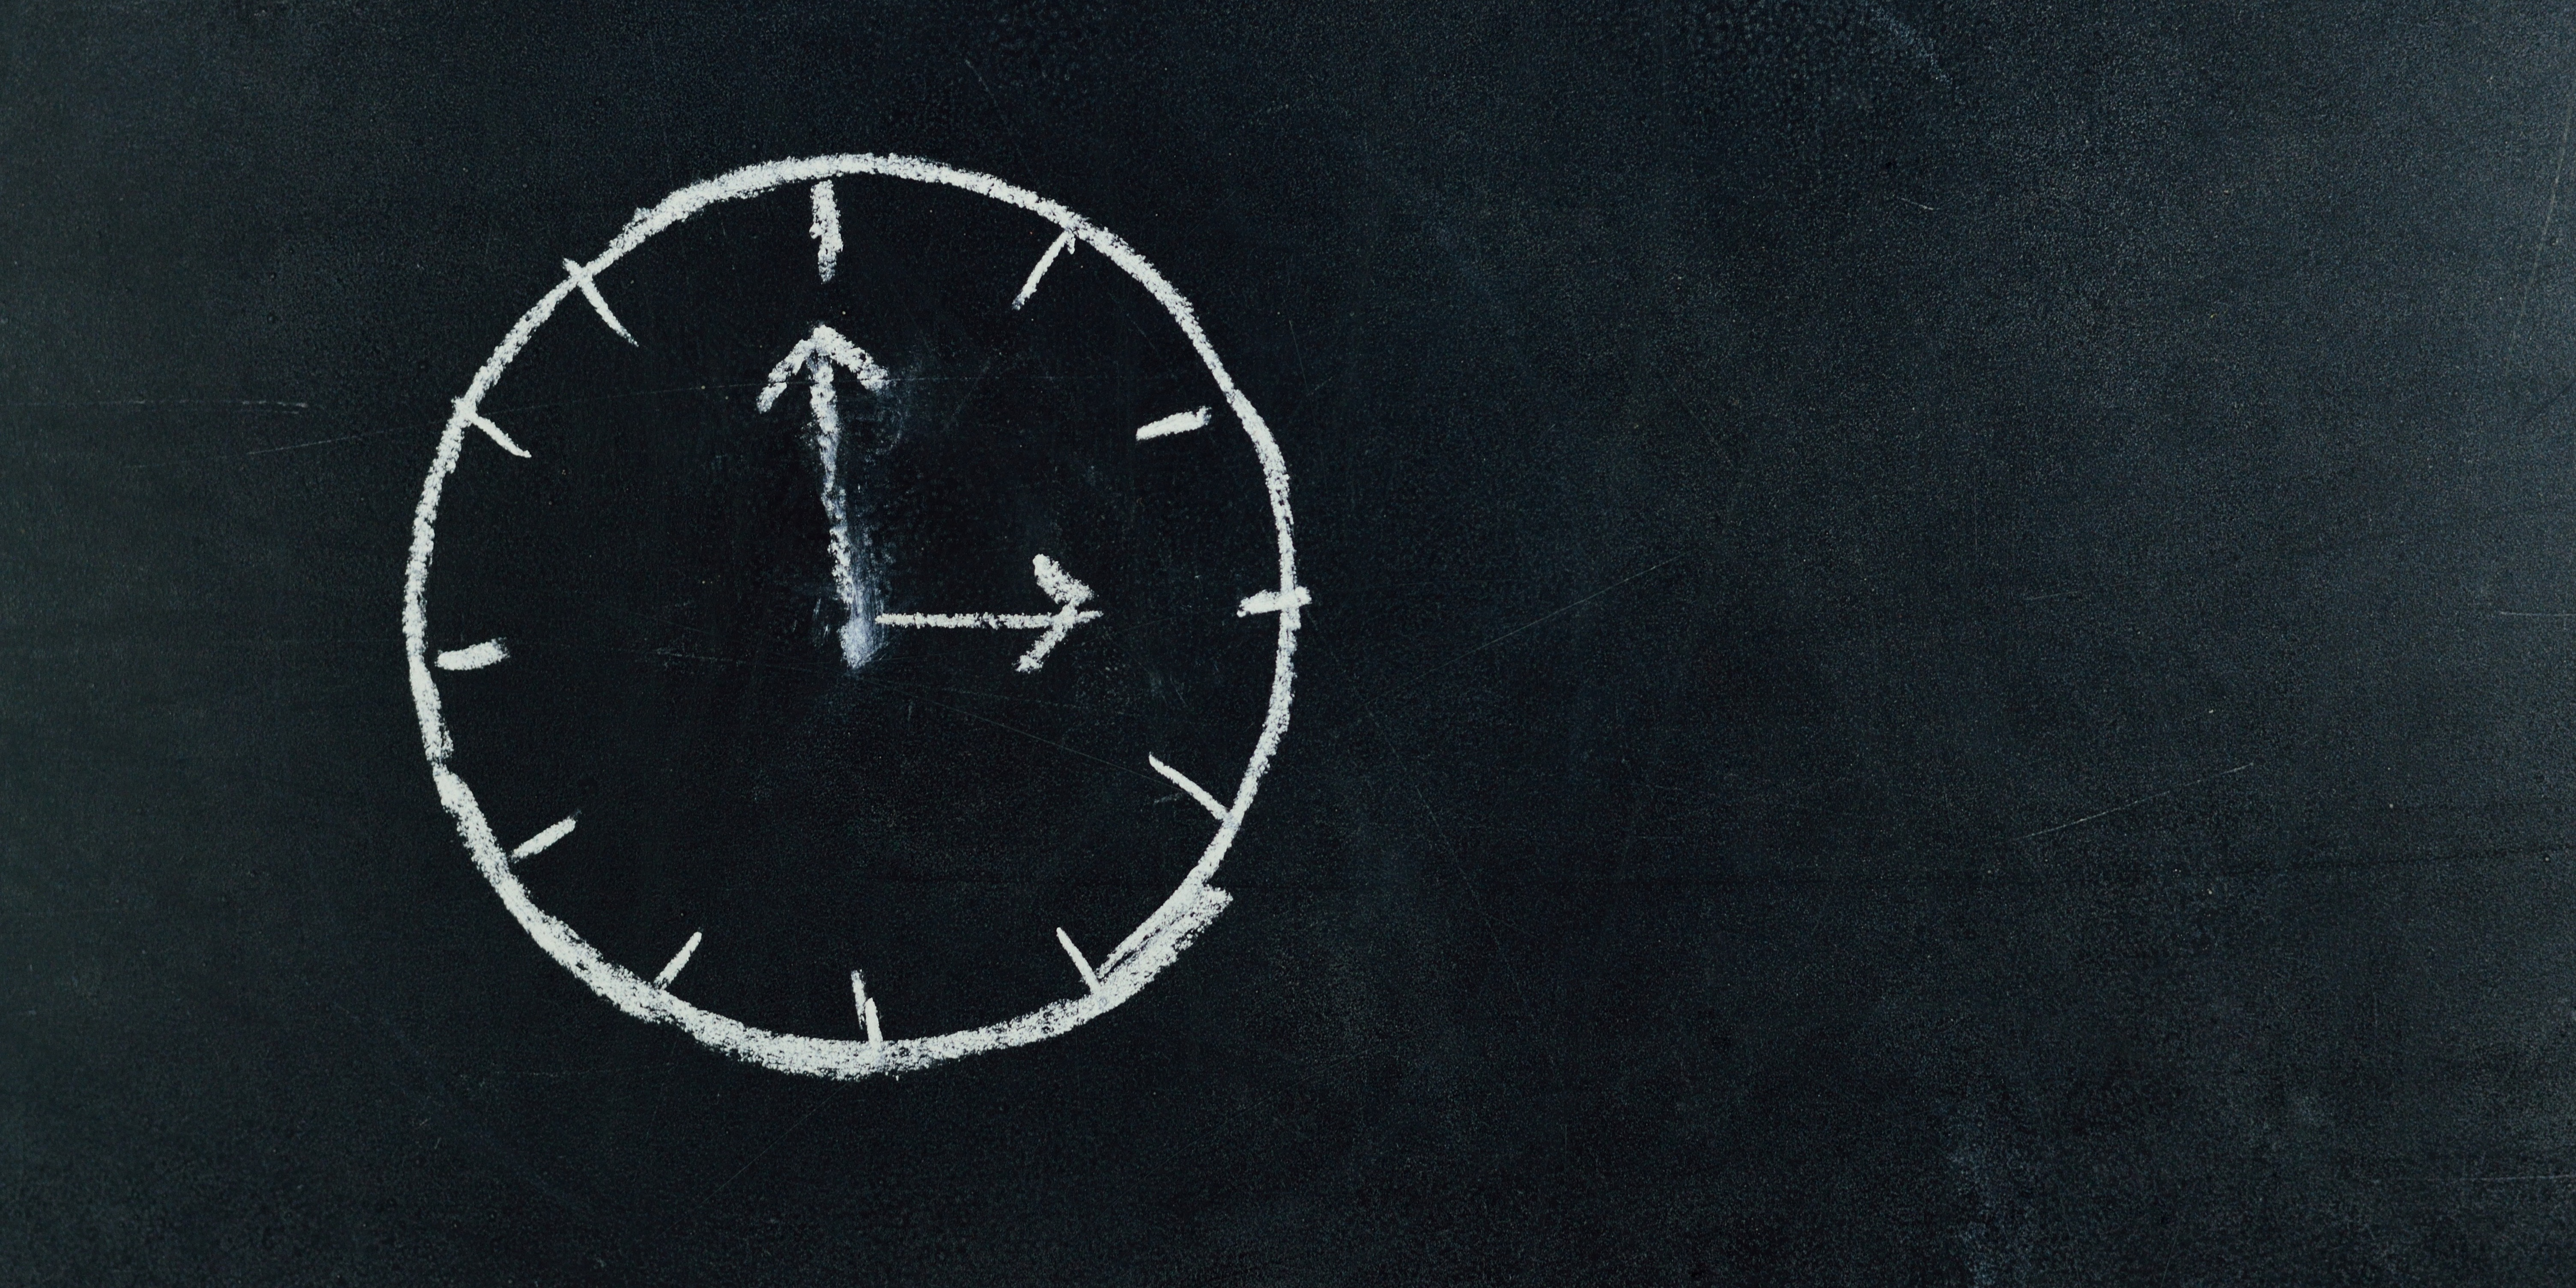 avoid wasting time on bogus prospects